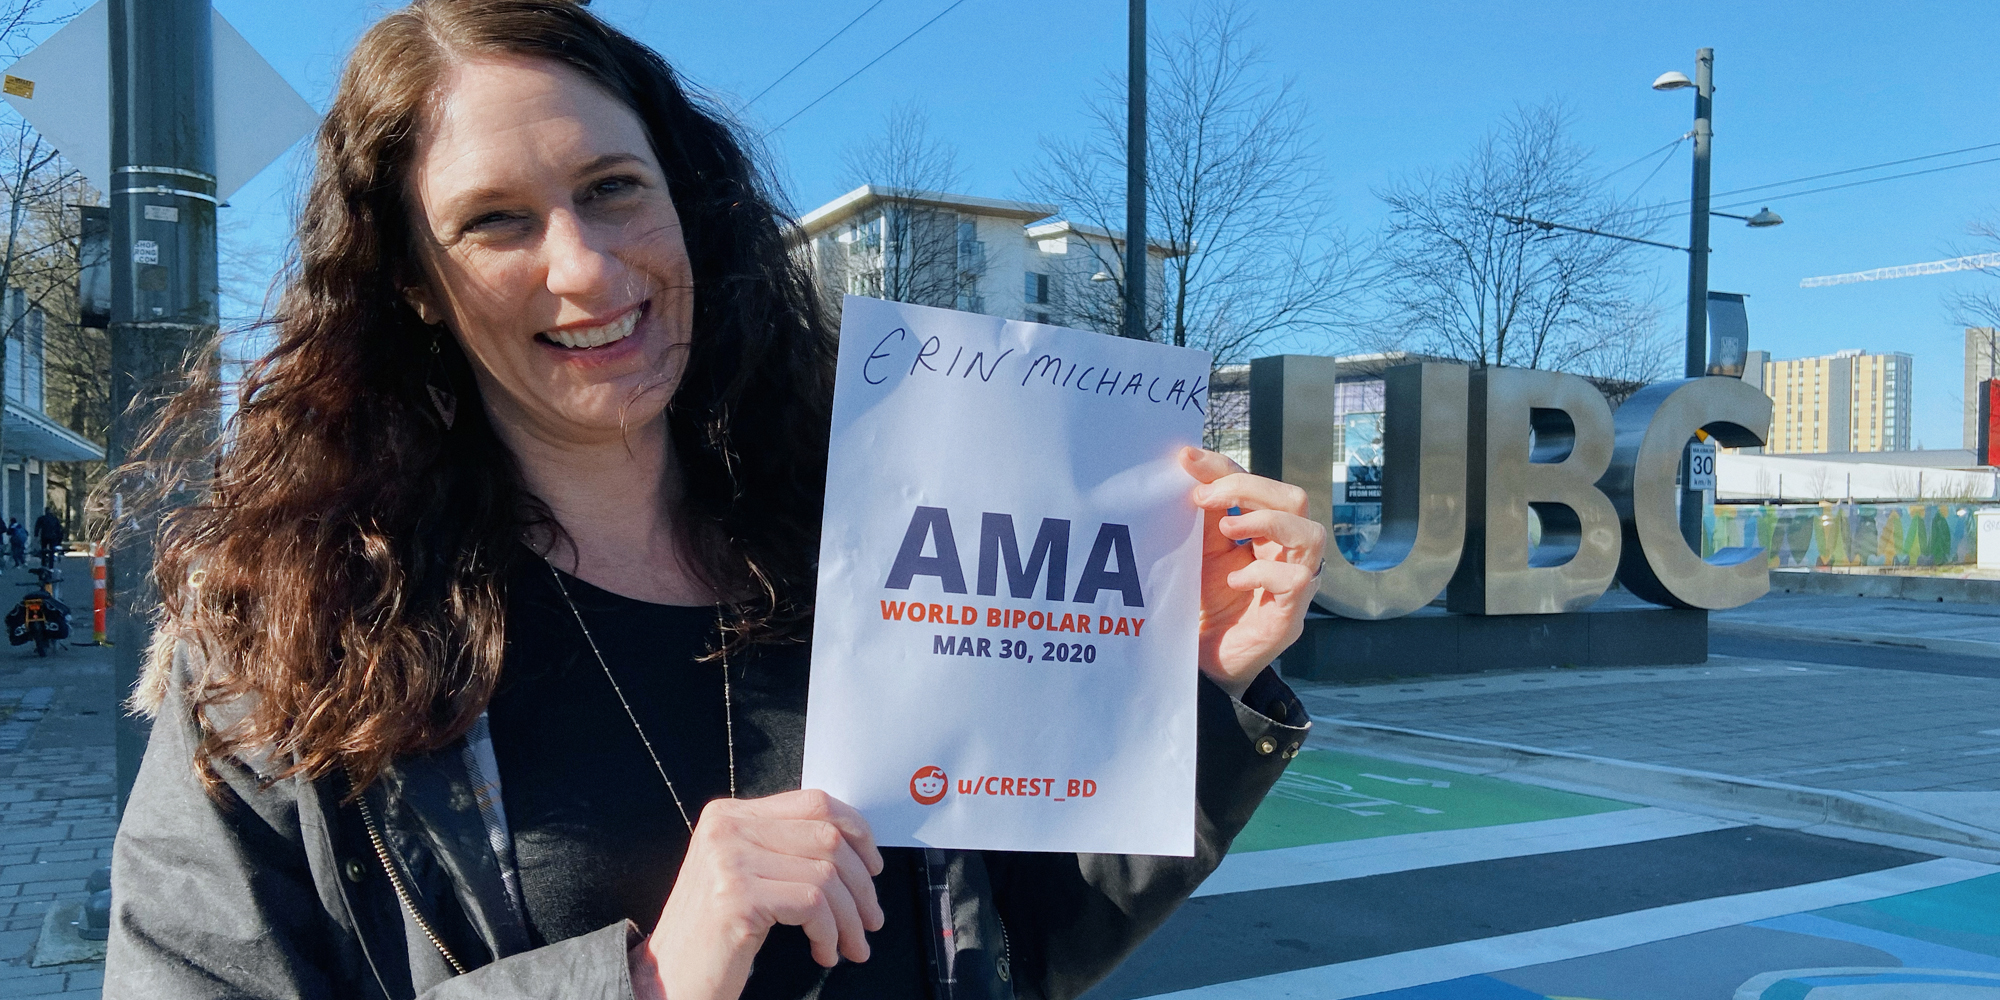 Erin outside, smiling and standing by a statue of the UBC logo. She is holding a sign proving she will be involved in the bipolar ama, with her name and the AMA date and time on it.